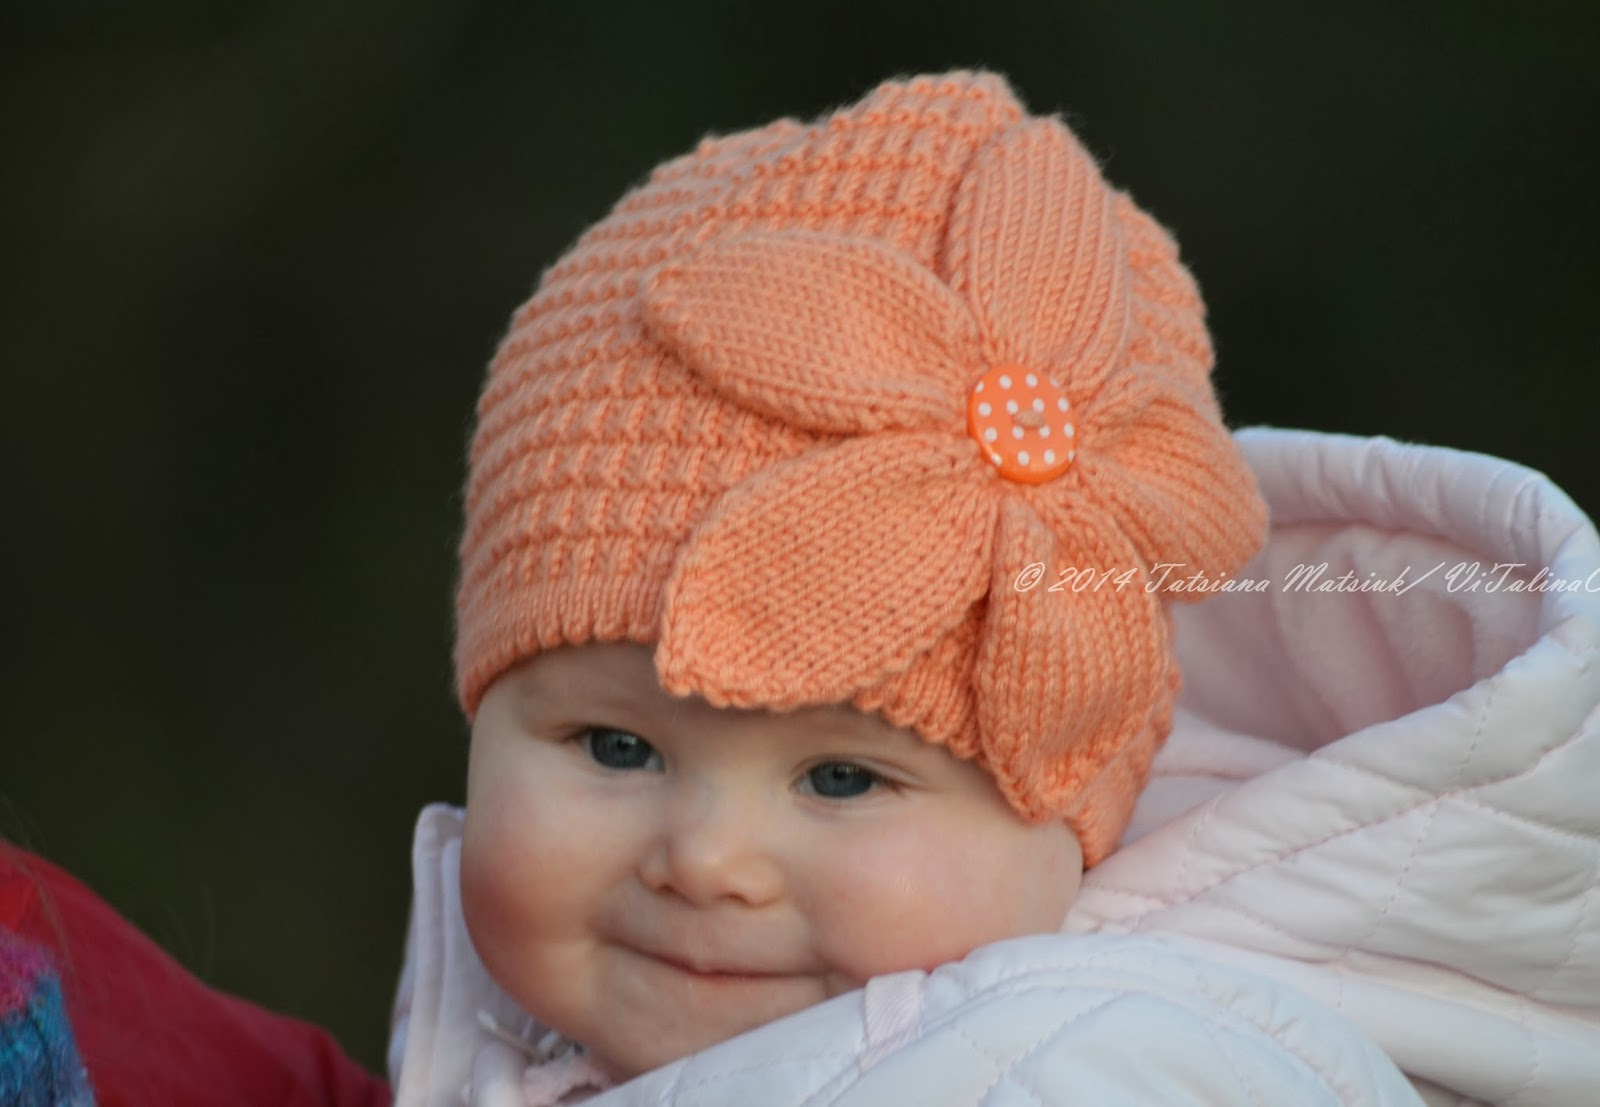 Felted Knit Hat Patterns : Peach Flower Baby Hat Knitting Pattern ViTalina Craft